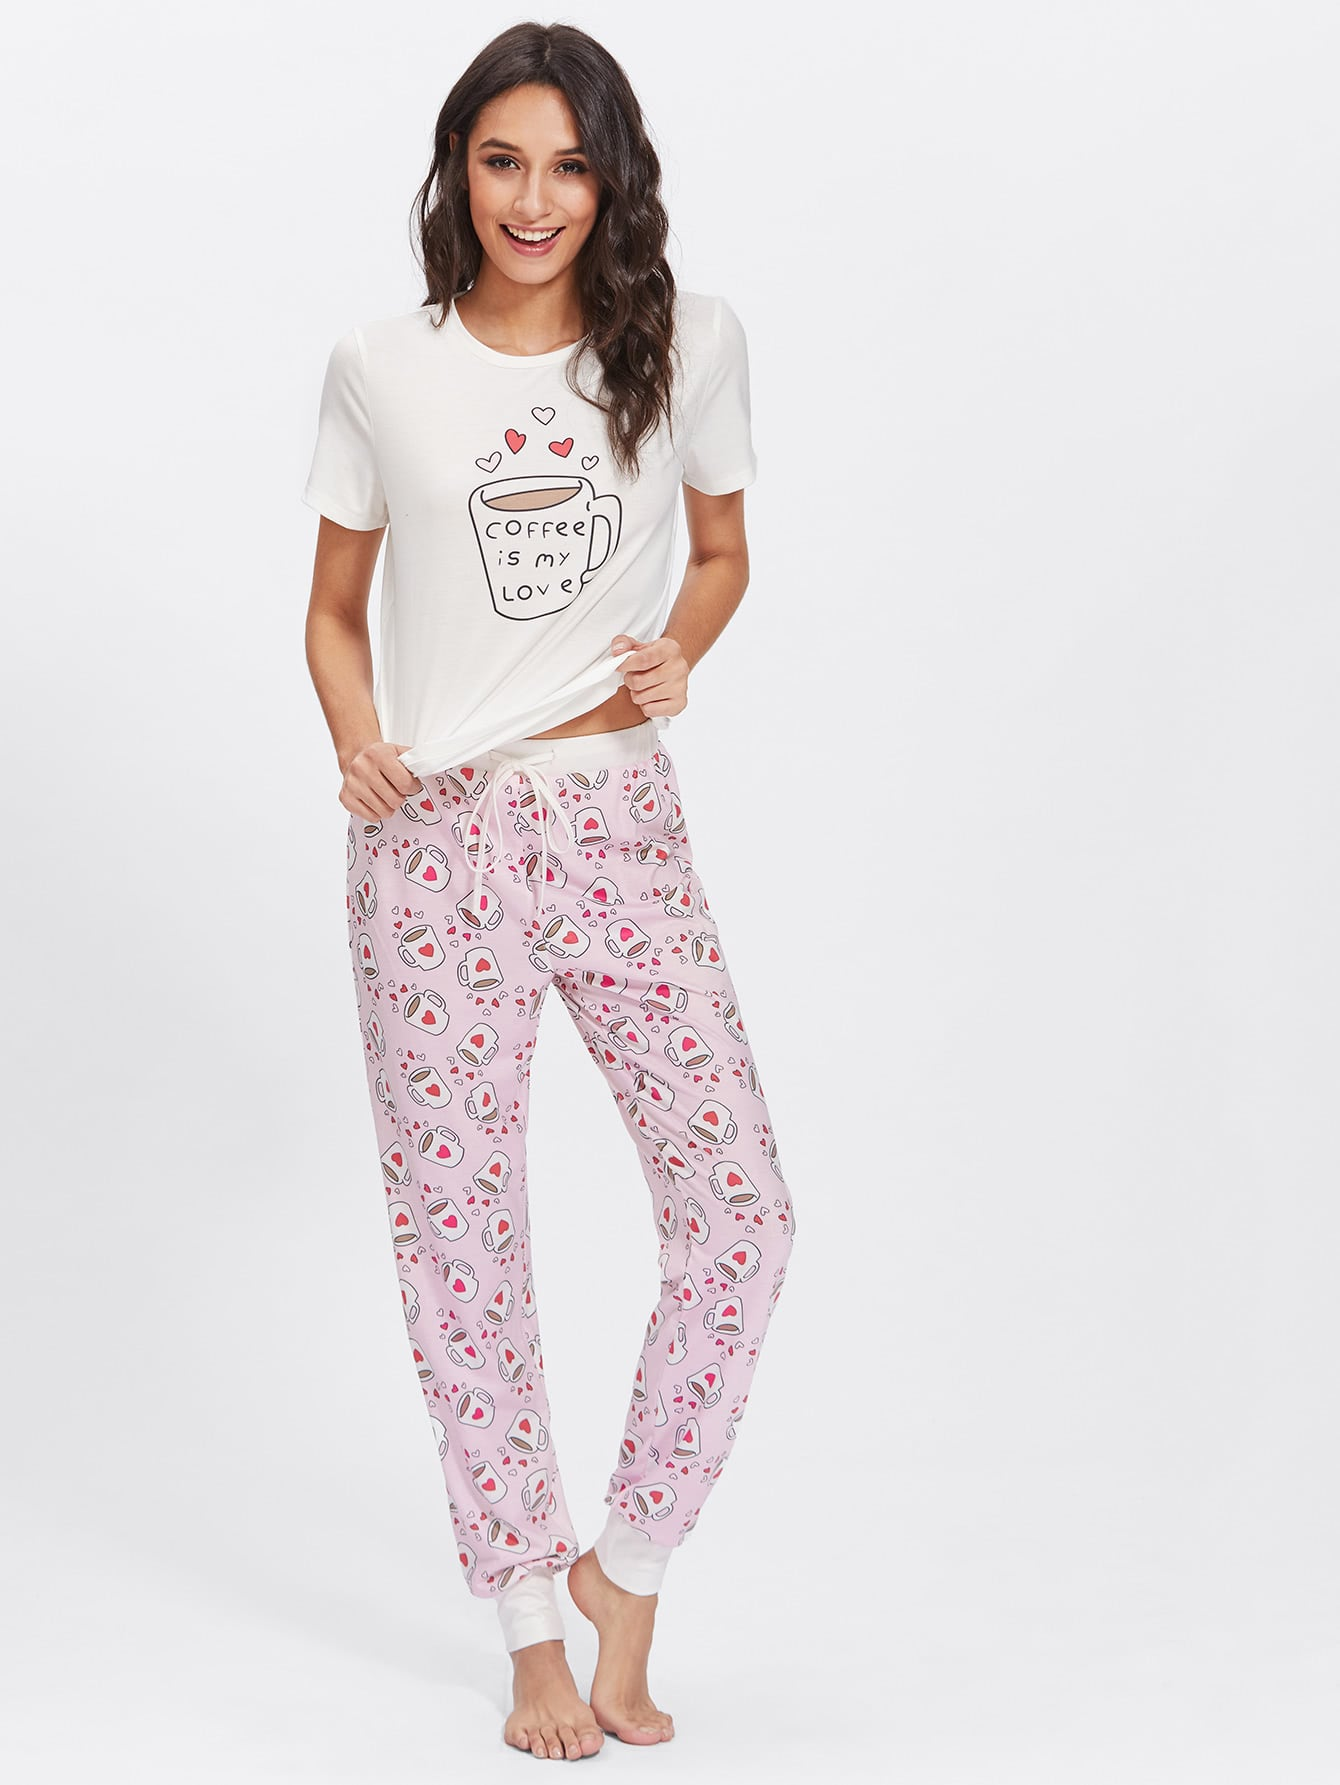 Graphic Tee & Allover Print Pants Pj Set